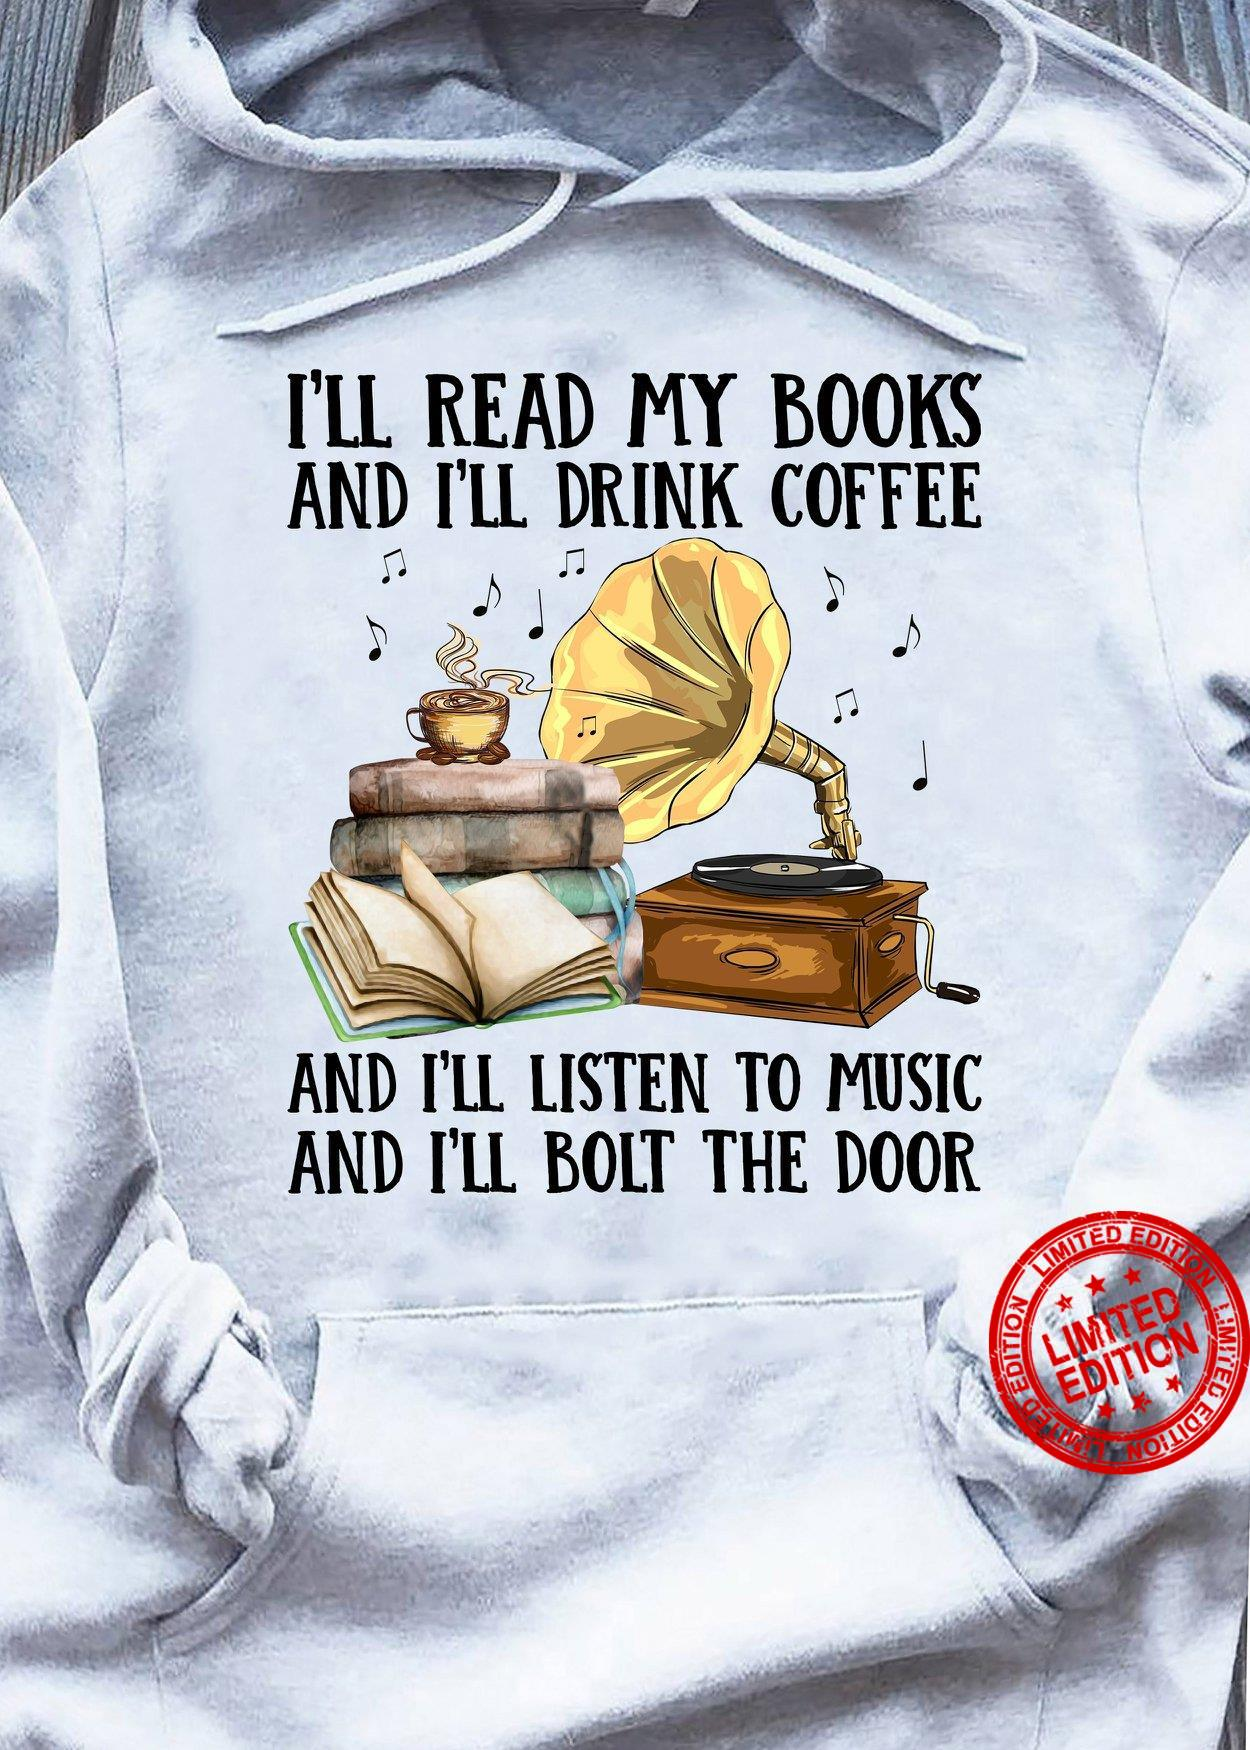 I'll Read My Books And I'll Drink Coffee And I'll Listen To Music And I'll Bolt The Door Shirt